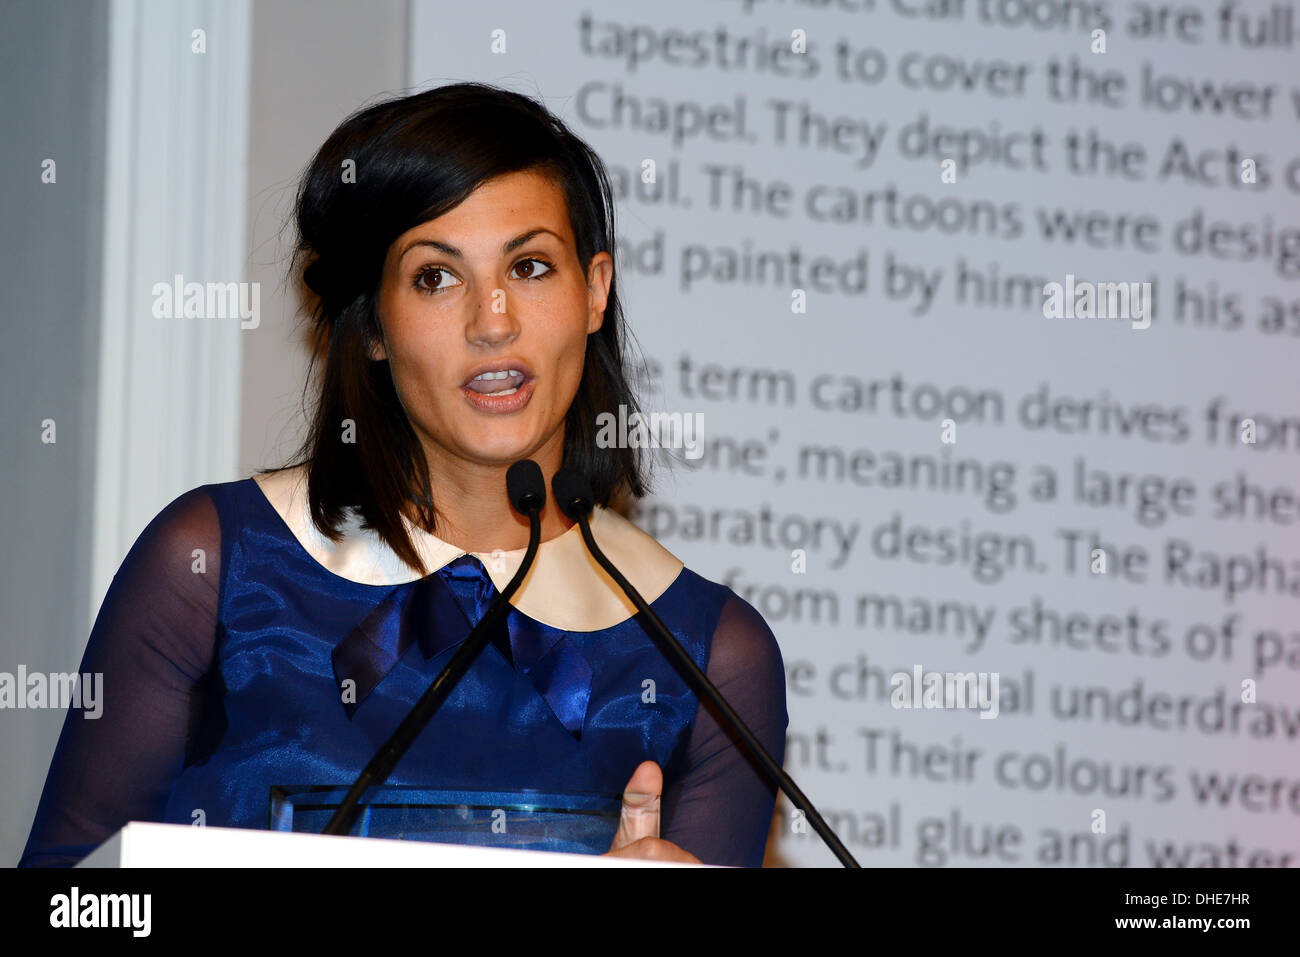 London, UK. 7th Nov 2013.  Mamas & Papas, Advert Award of the year of the Stonewall Awards 2013 taking place at the Victoria and Albert Museum. Credit:  See Li/Alamy Live News - Stock Image